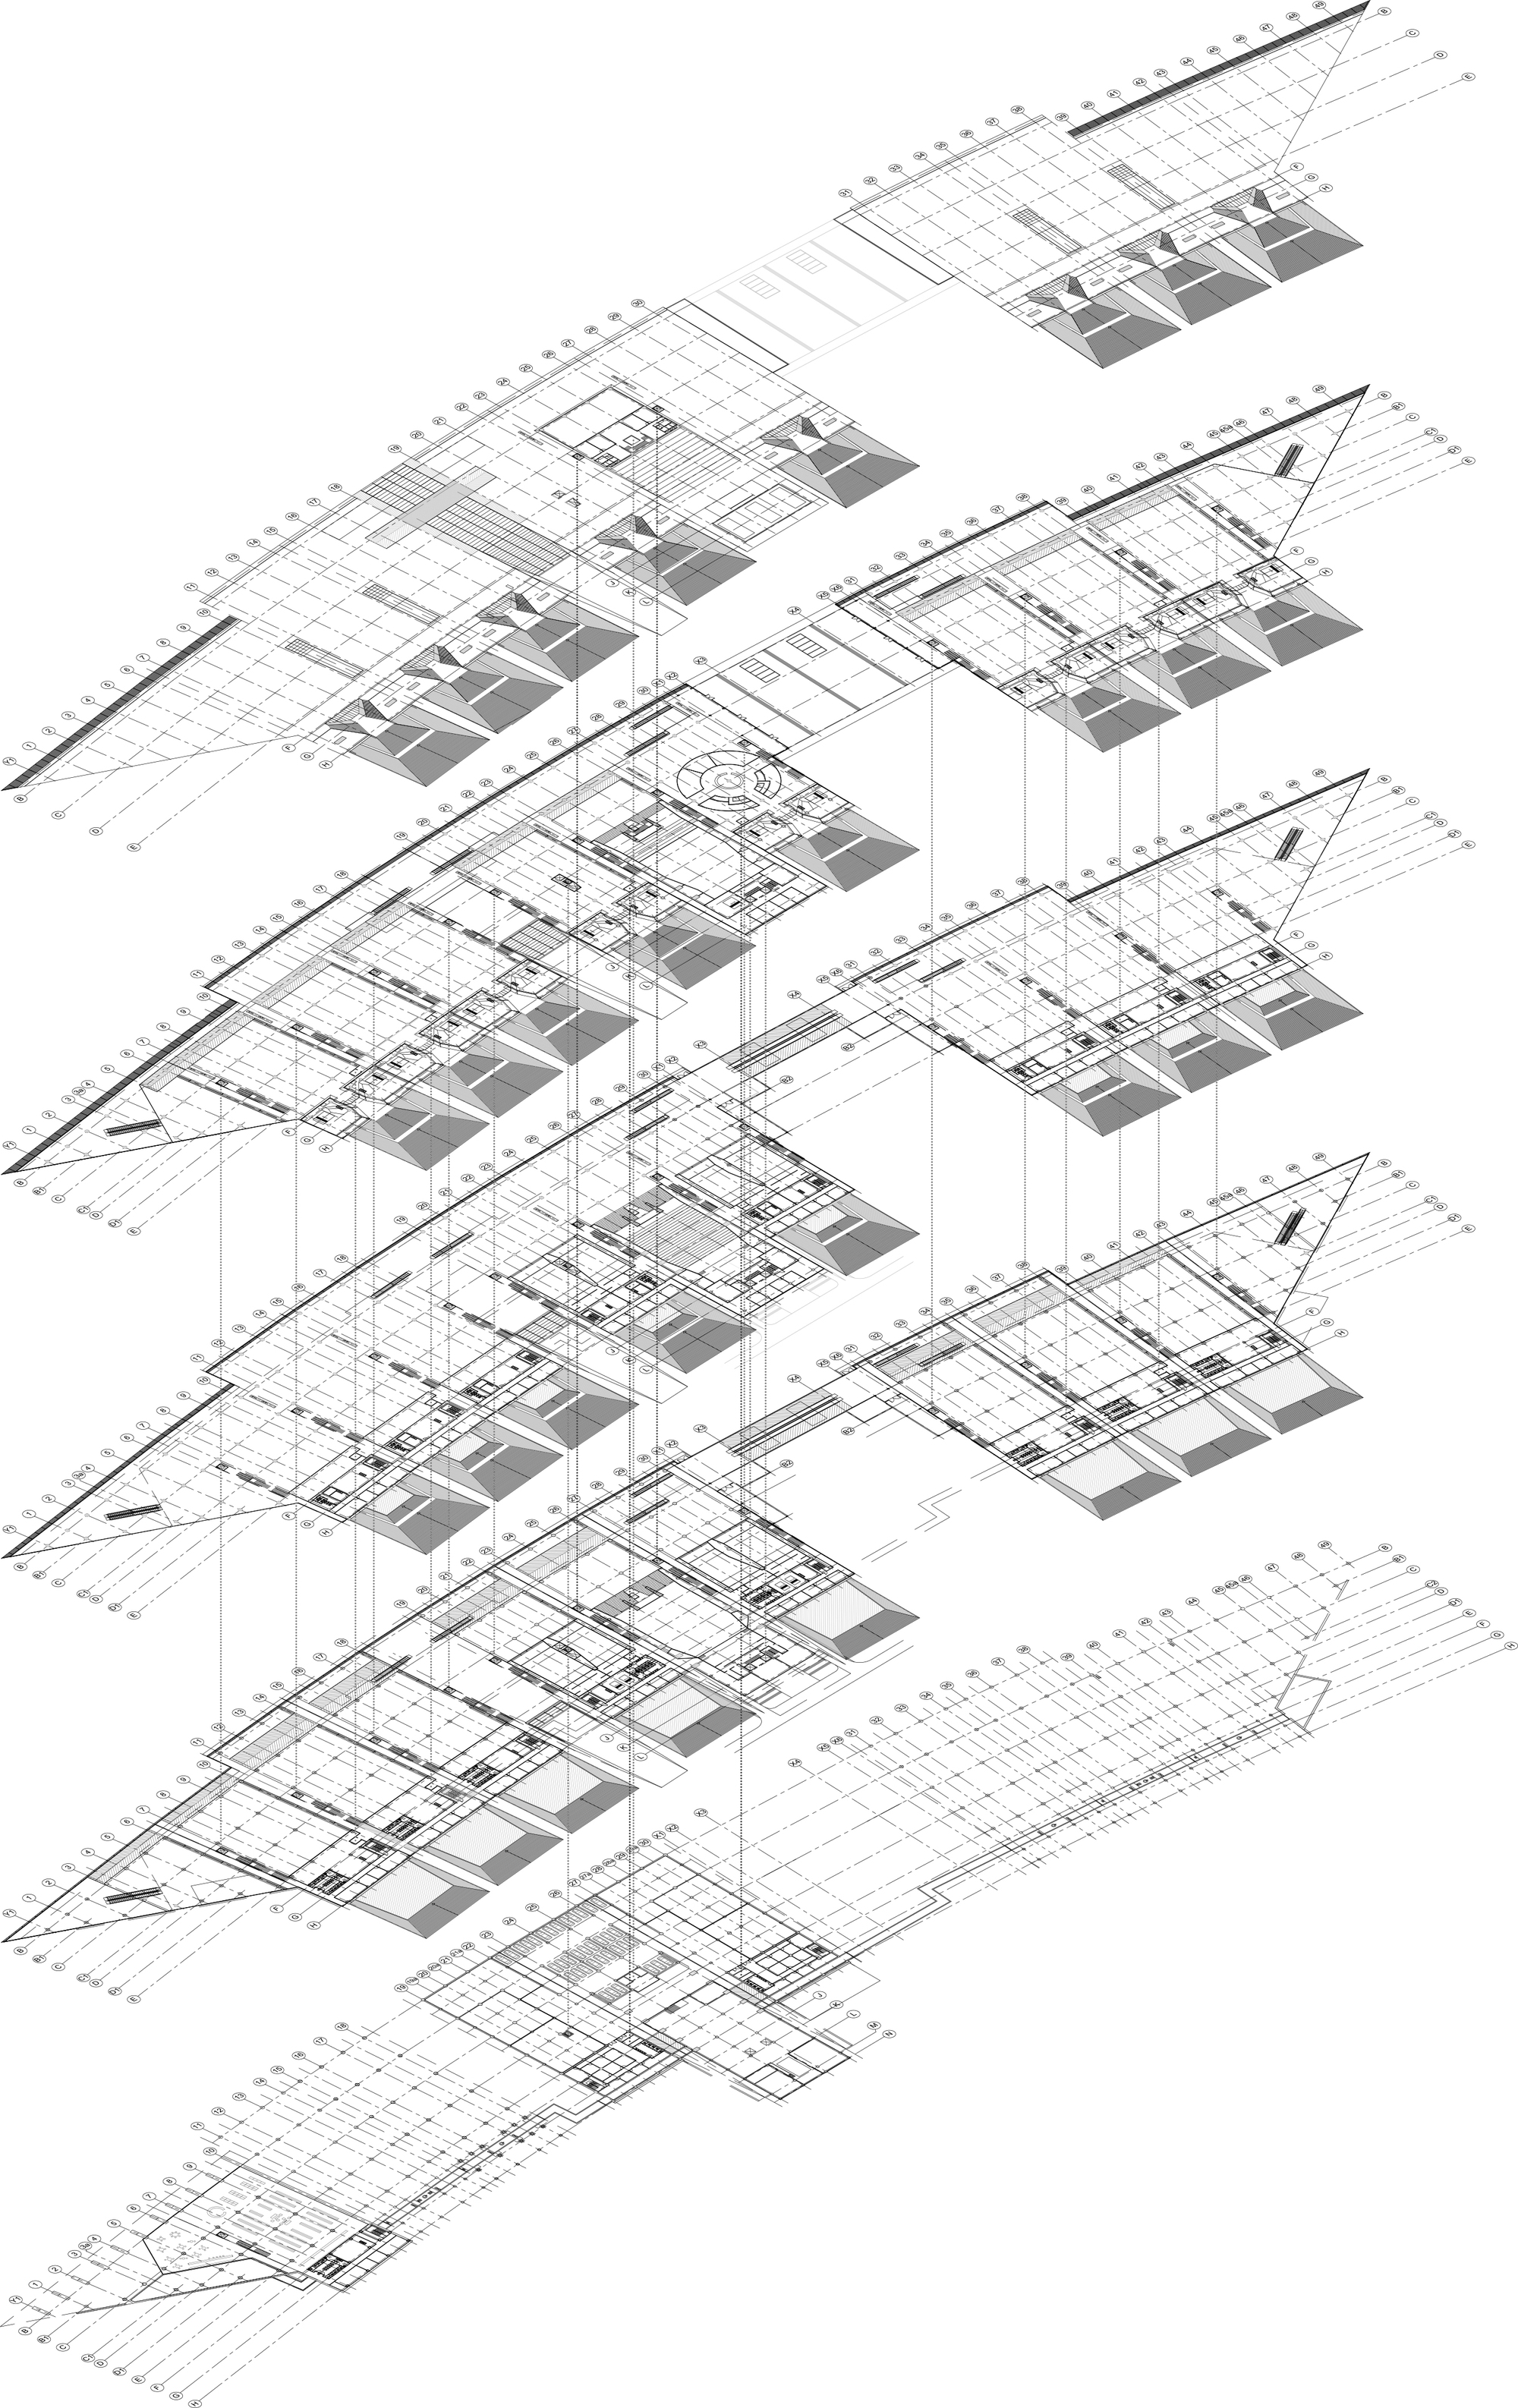 Gallery of tehran book garden design core 4s architects urban zoom image view original size ccuart Choice Image